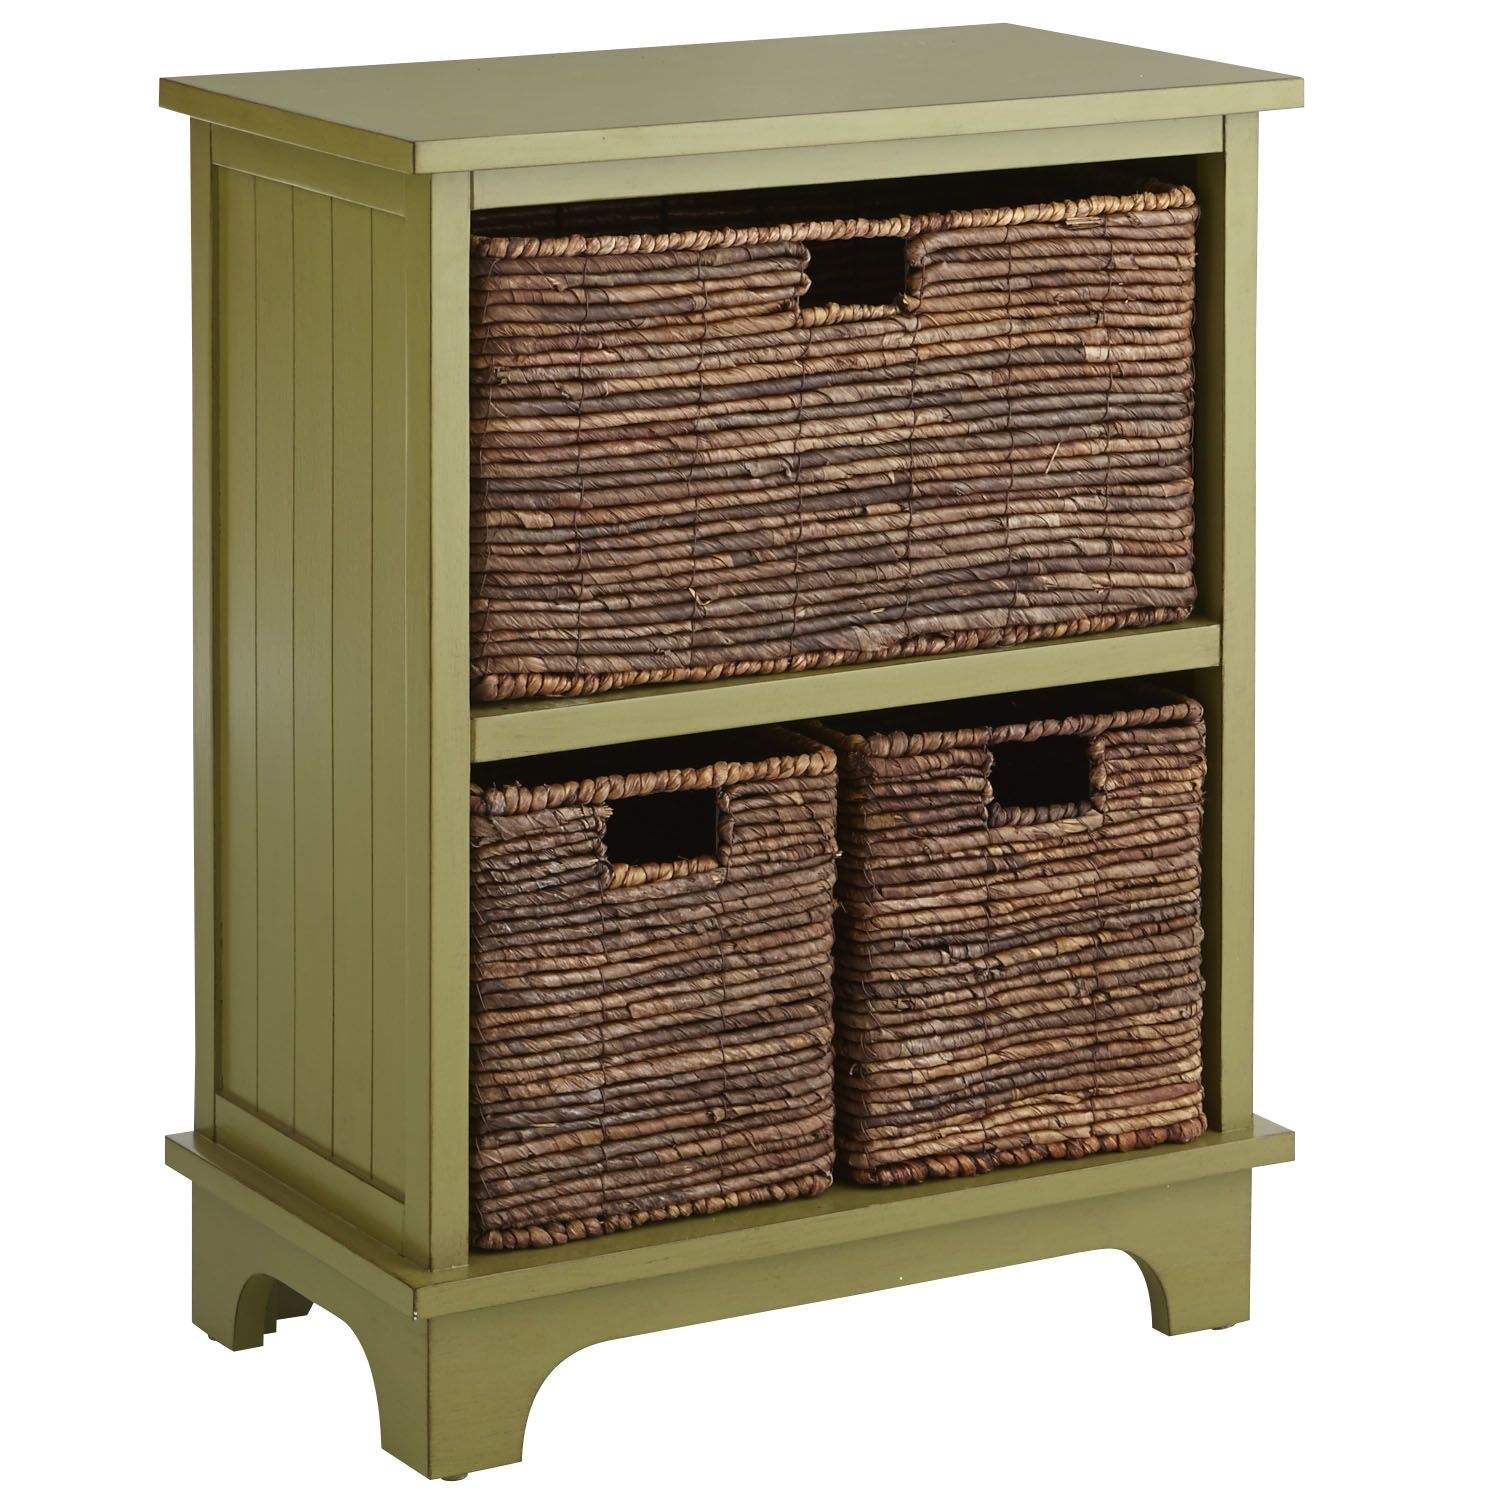 Holtom Chest - Antique Moss Green | Pier 1 Imports | furniture ...